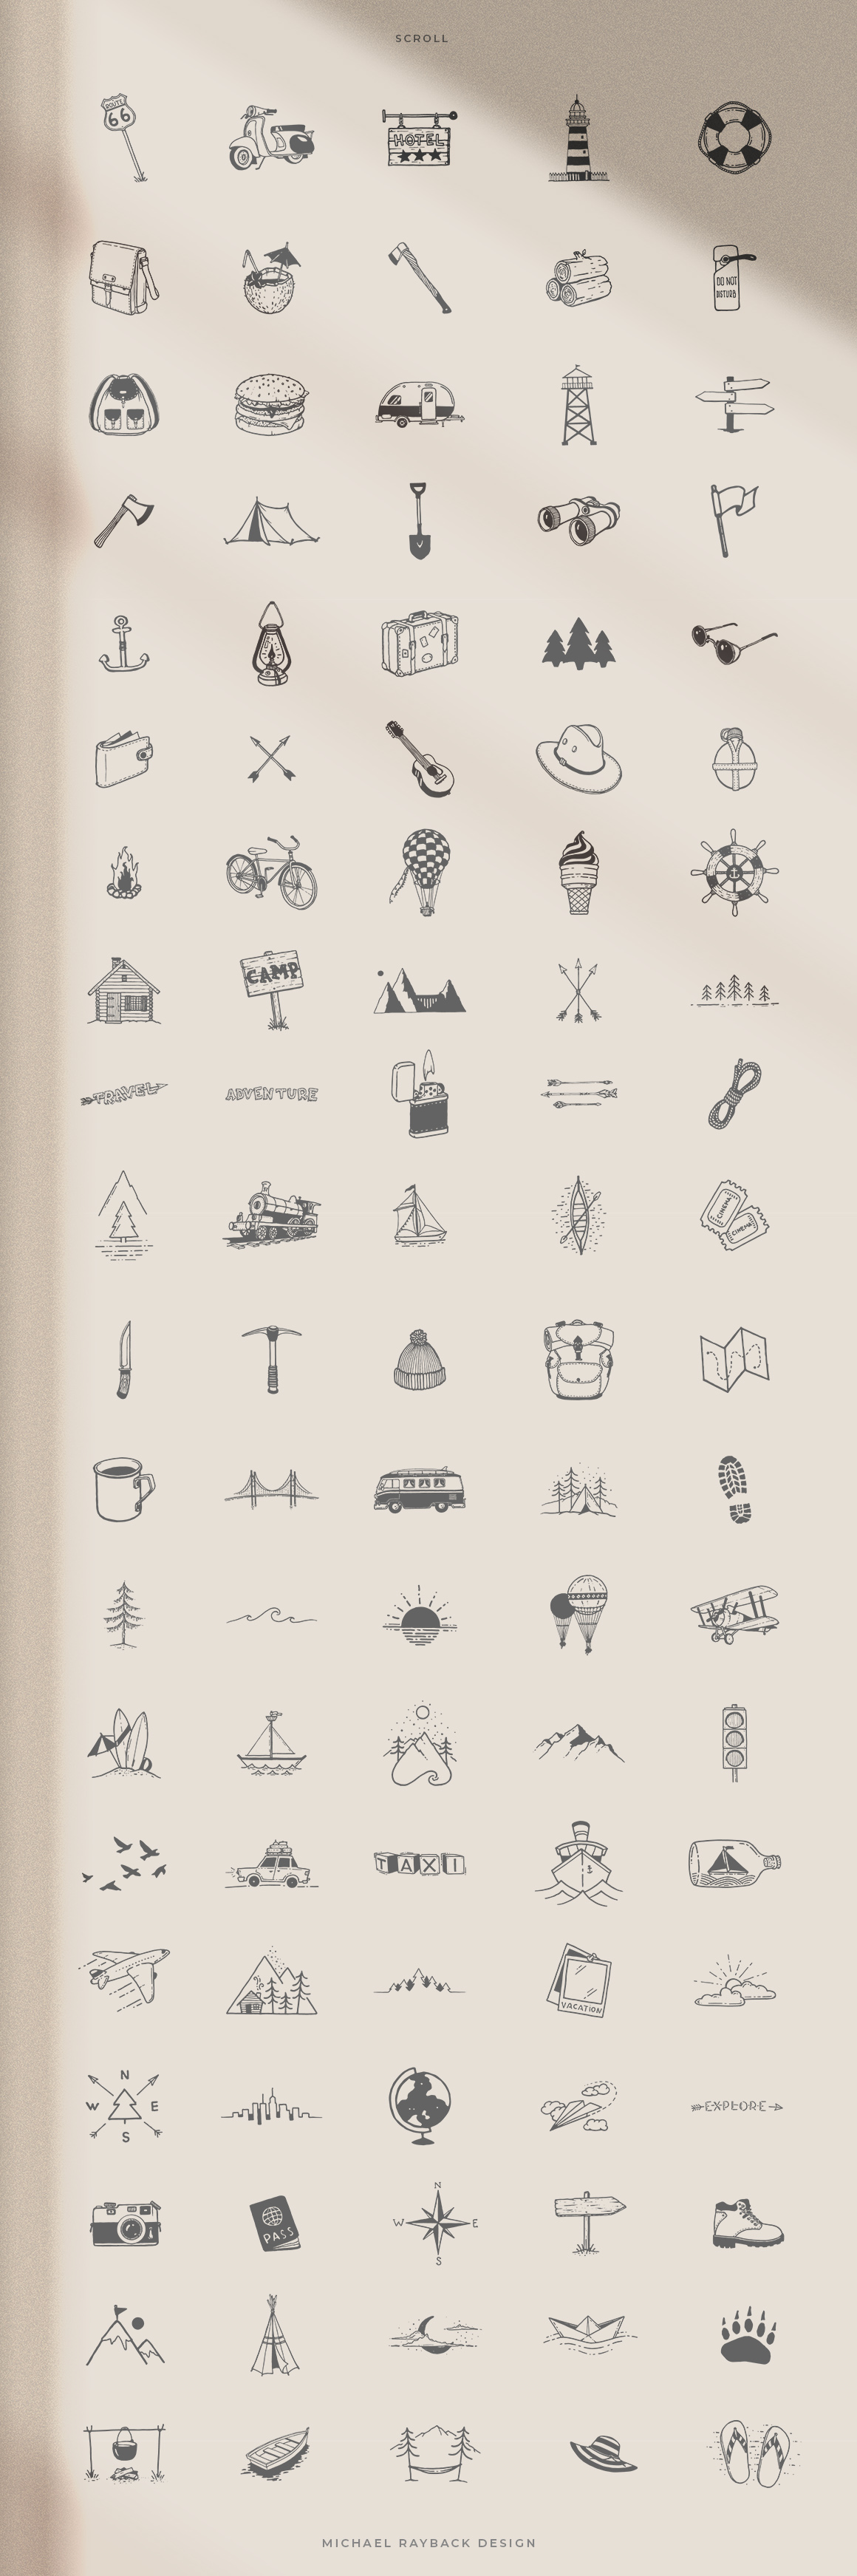 100 Hand Drawn Elements - Adventure